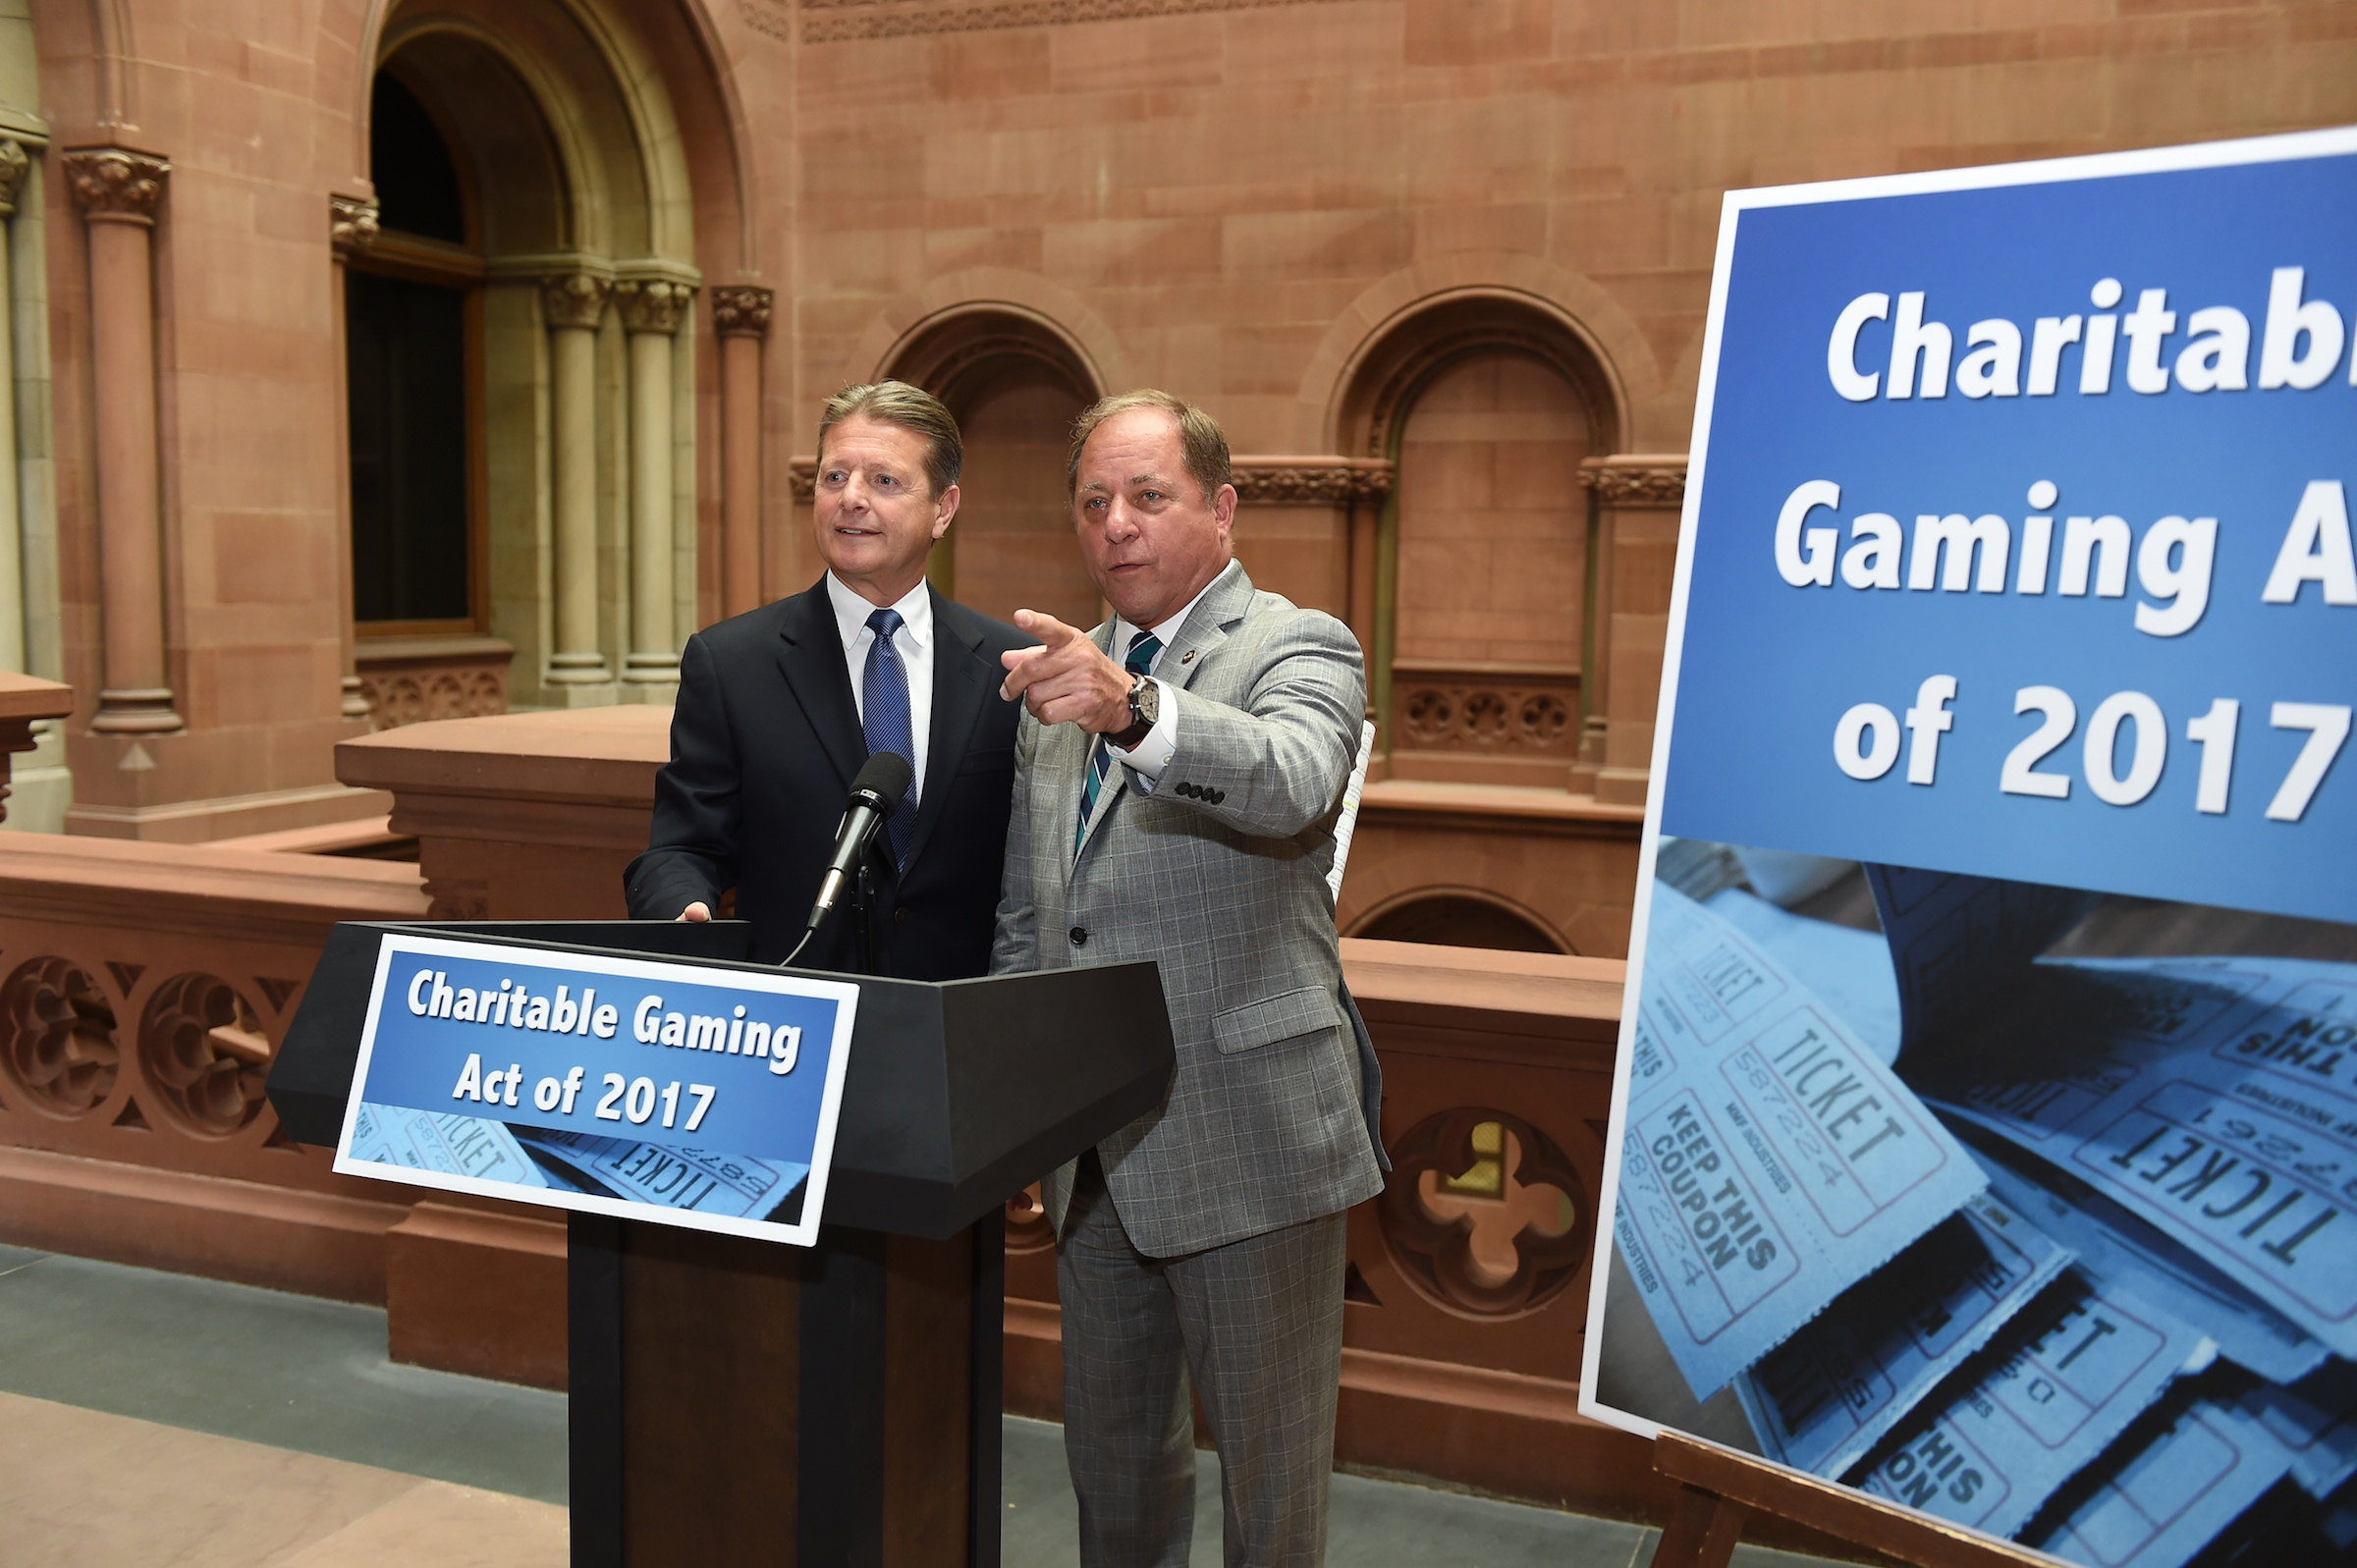 Charitable_Gaming_Presser_6-6-17.jpg